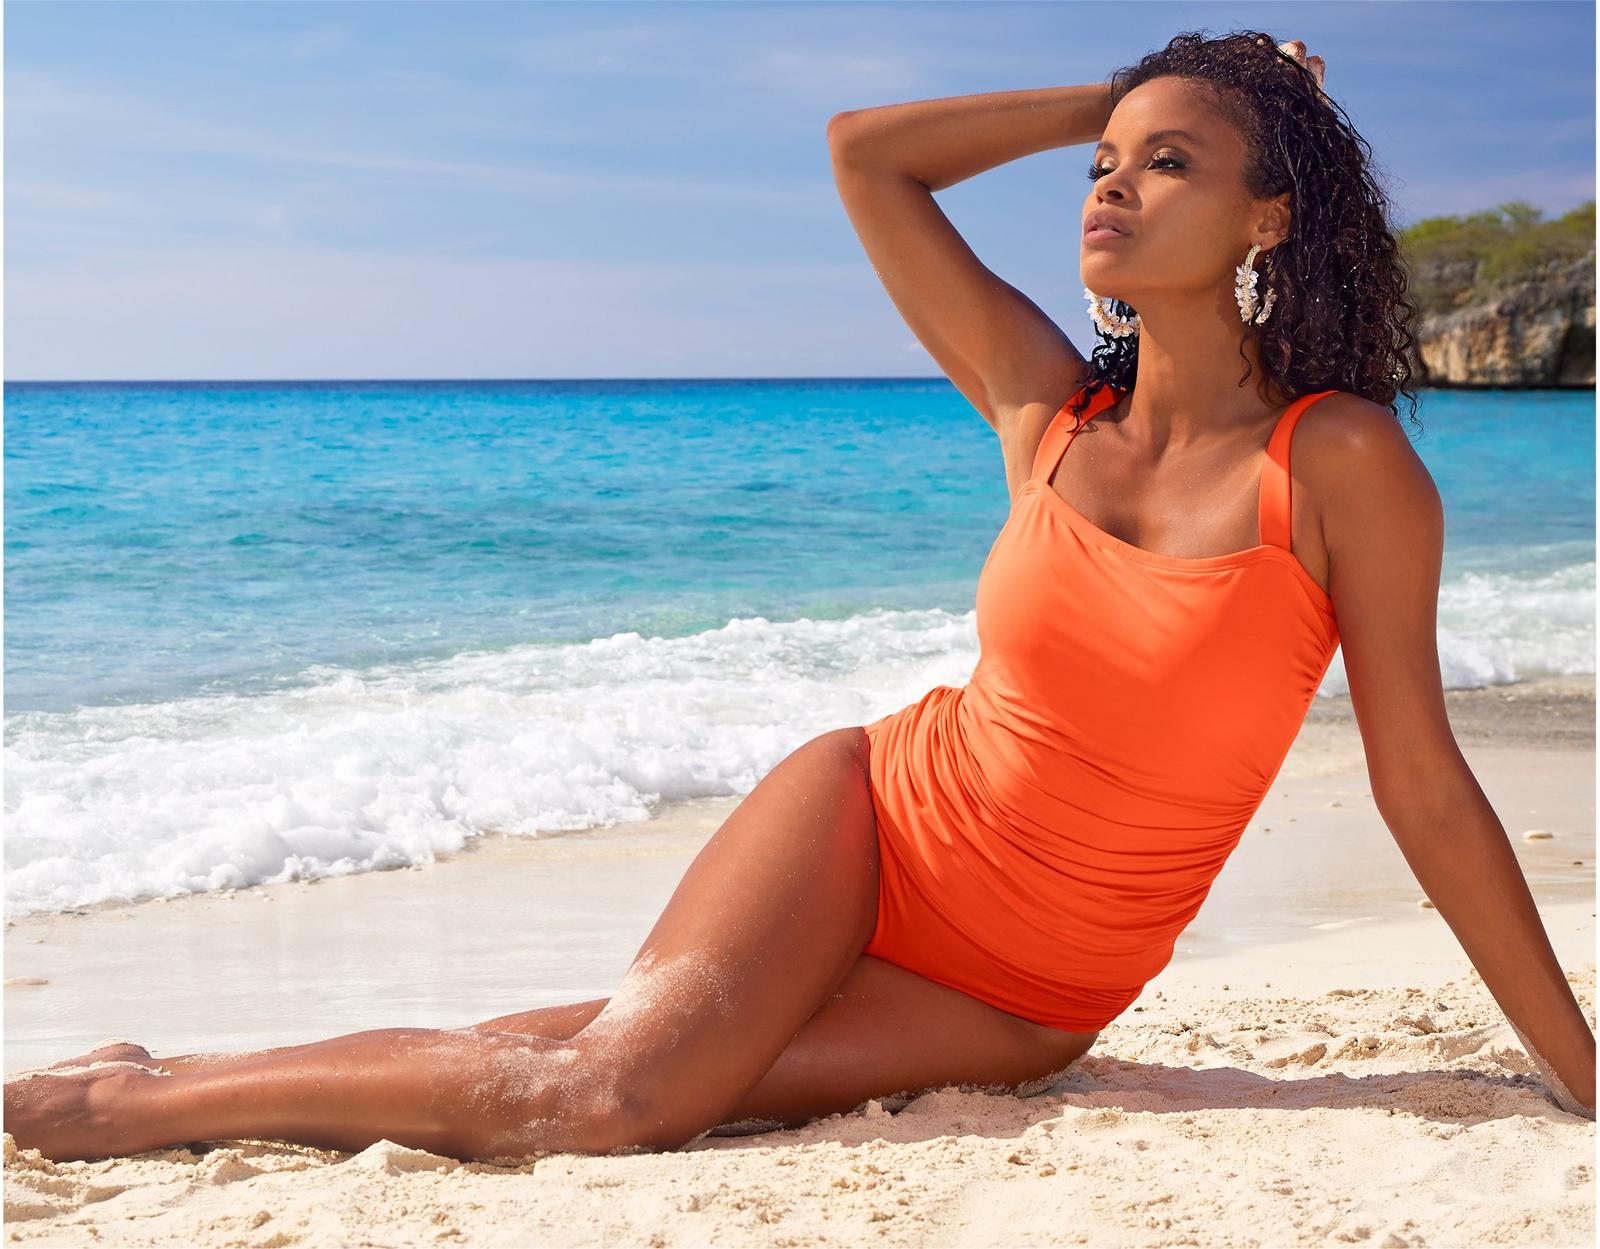 model lounging on the beach wearing a coral tankini with high-waisted bikini bottoms.